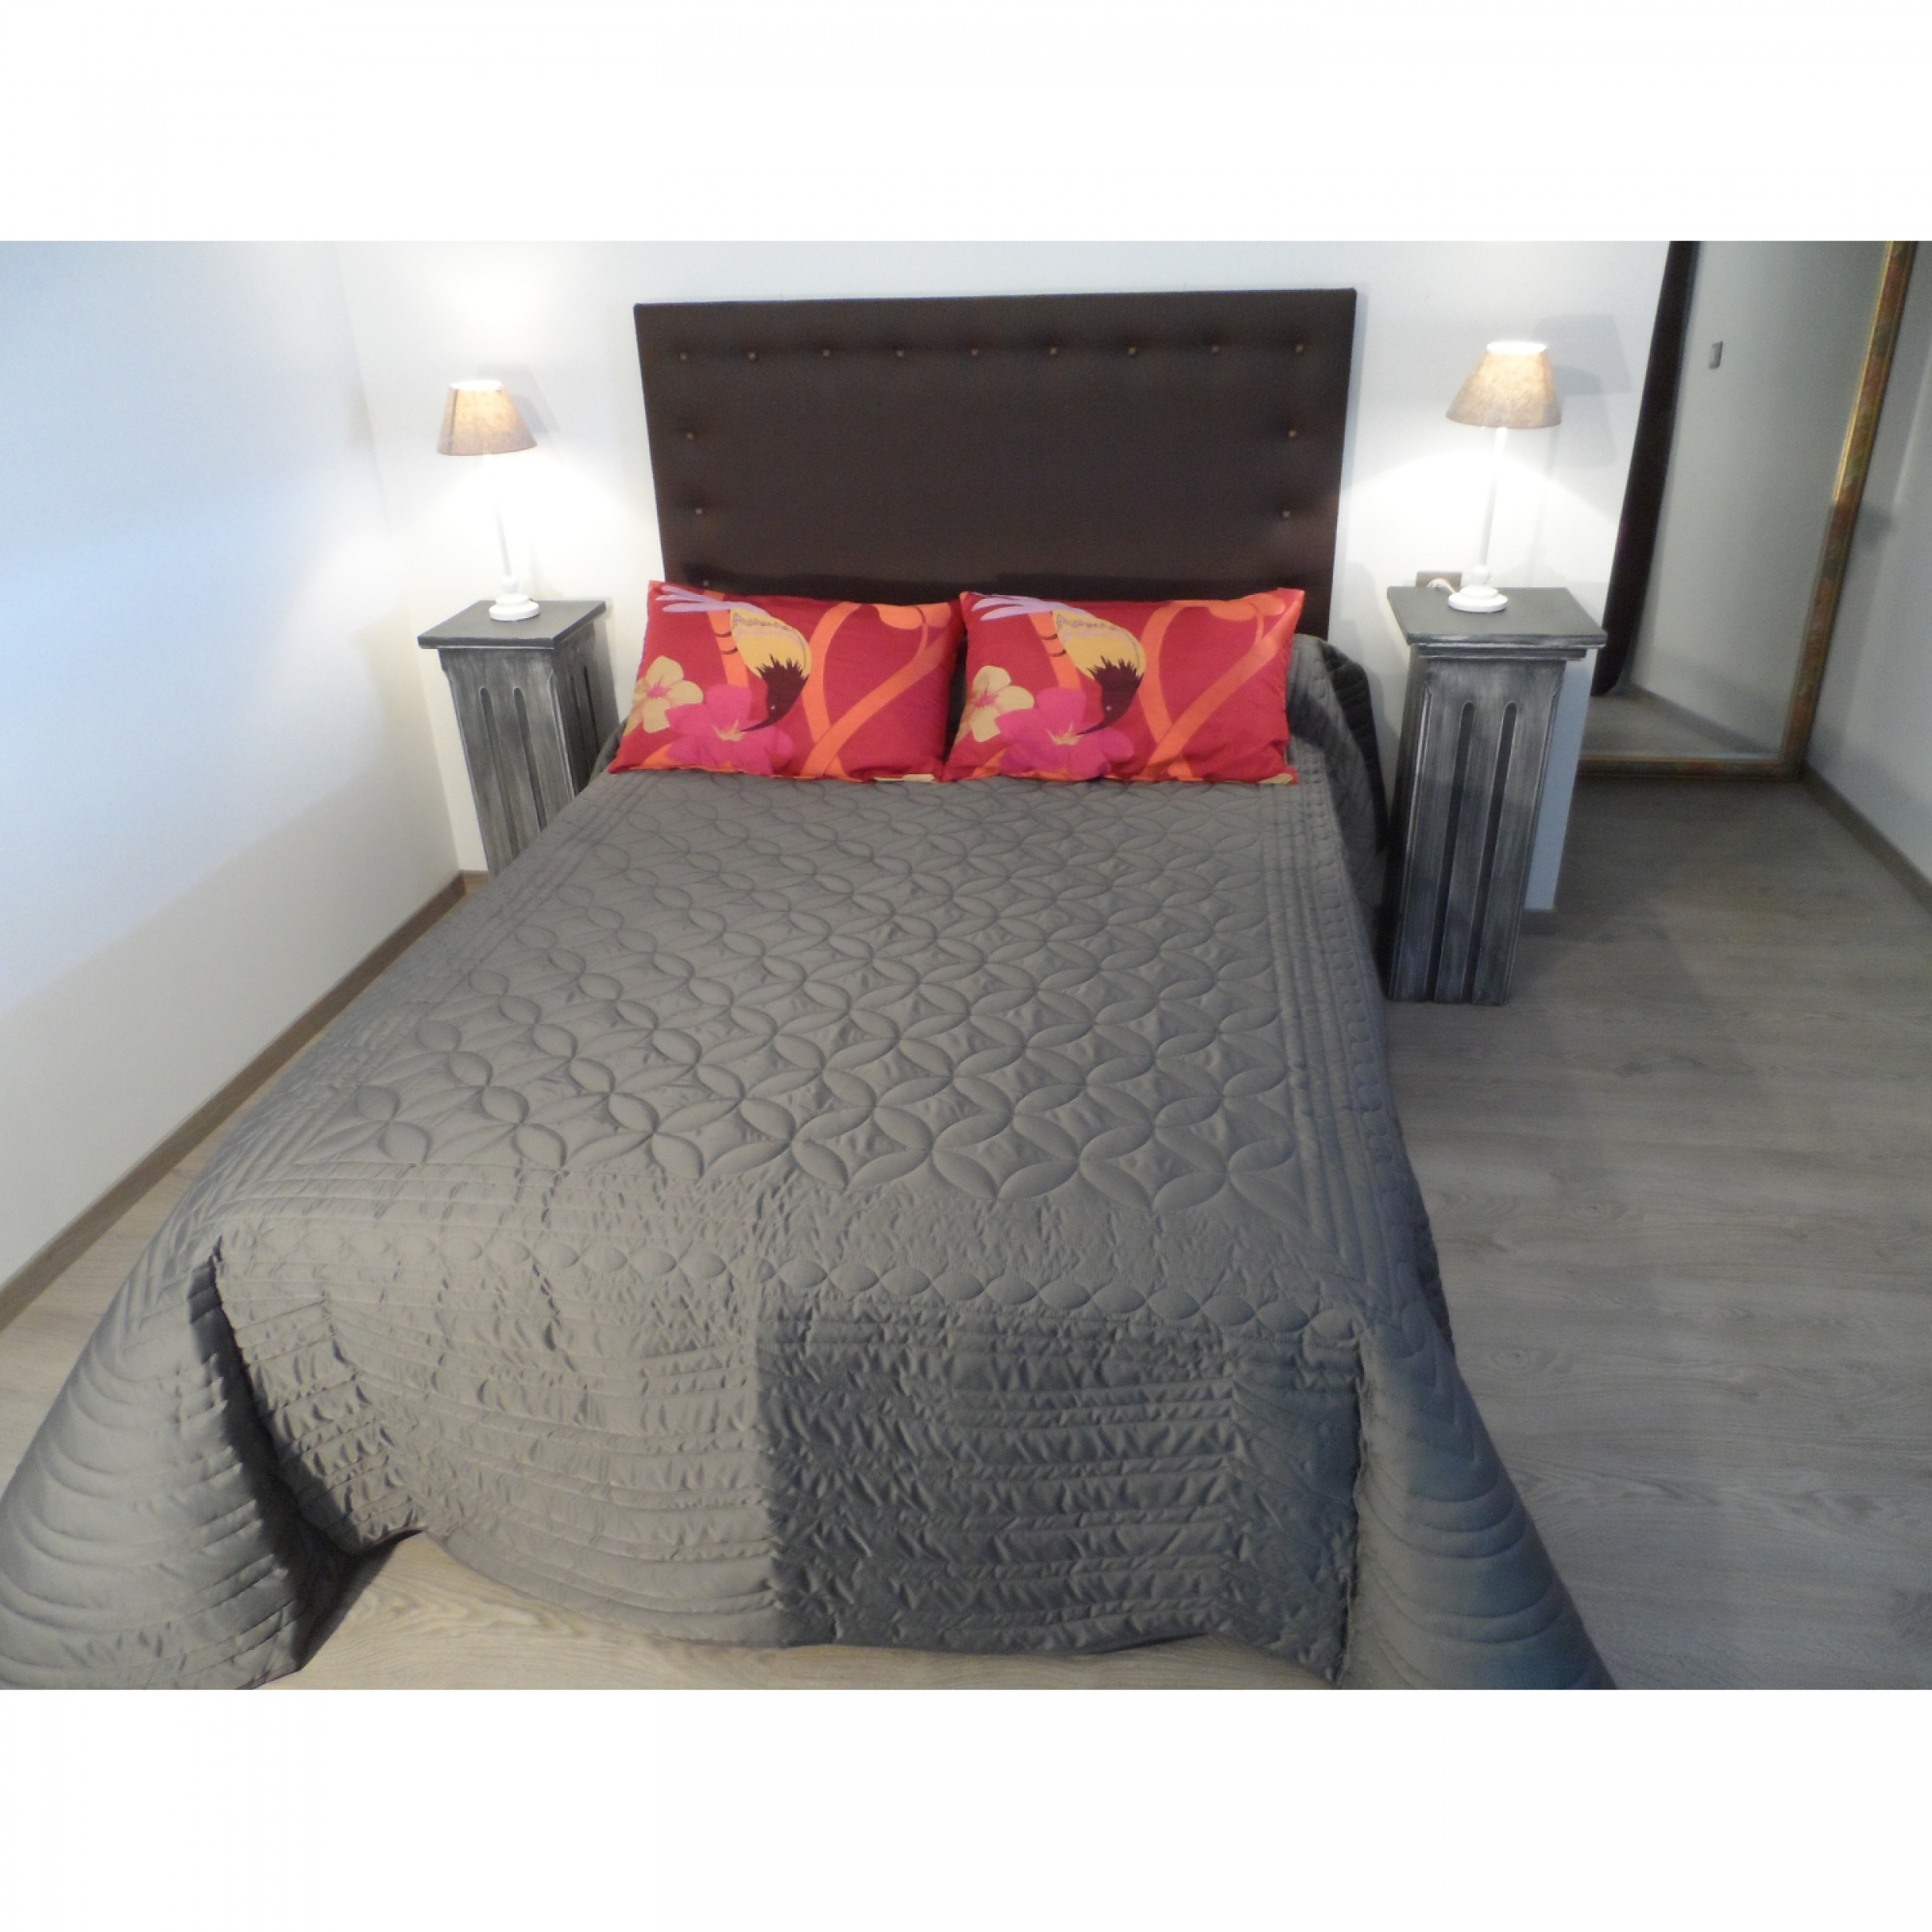 jet de lit soft gris matelass pour lit de 140 cm l 39 atelier de la toile. Black Bedroom Furniture Sets. Home Design Ideas